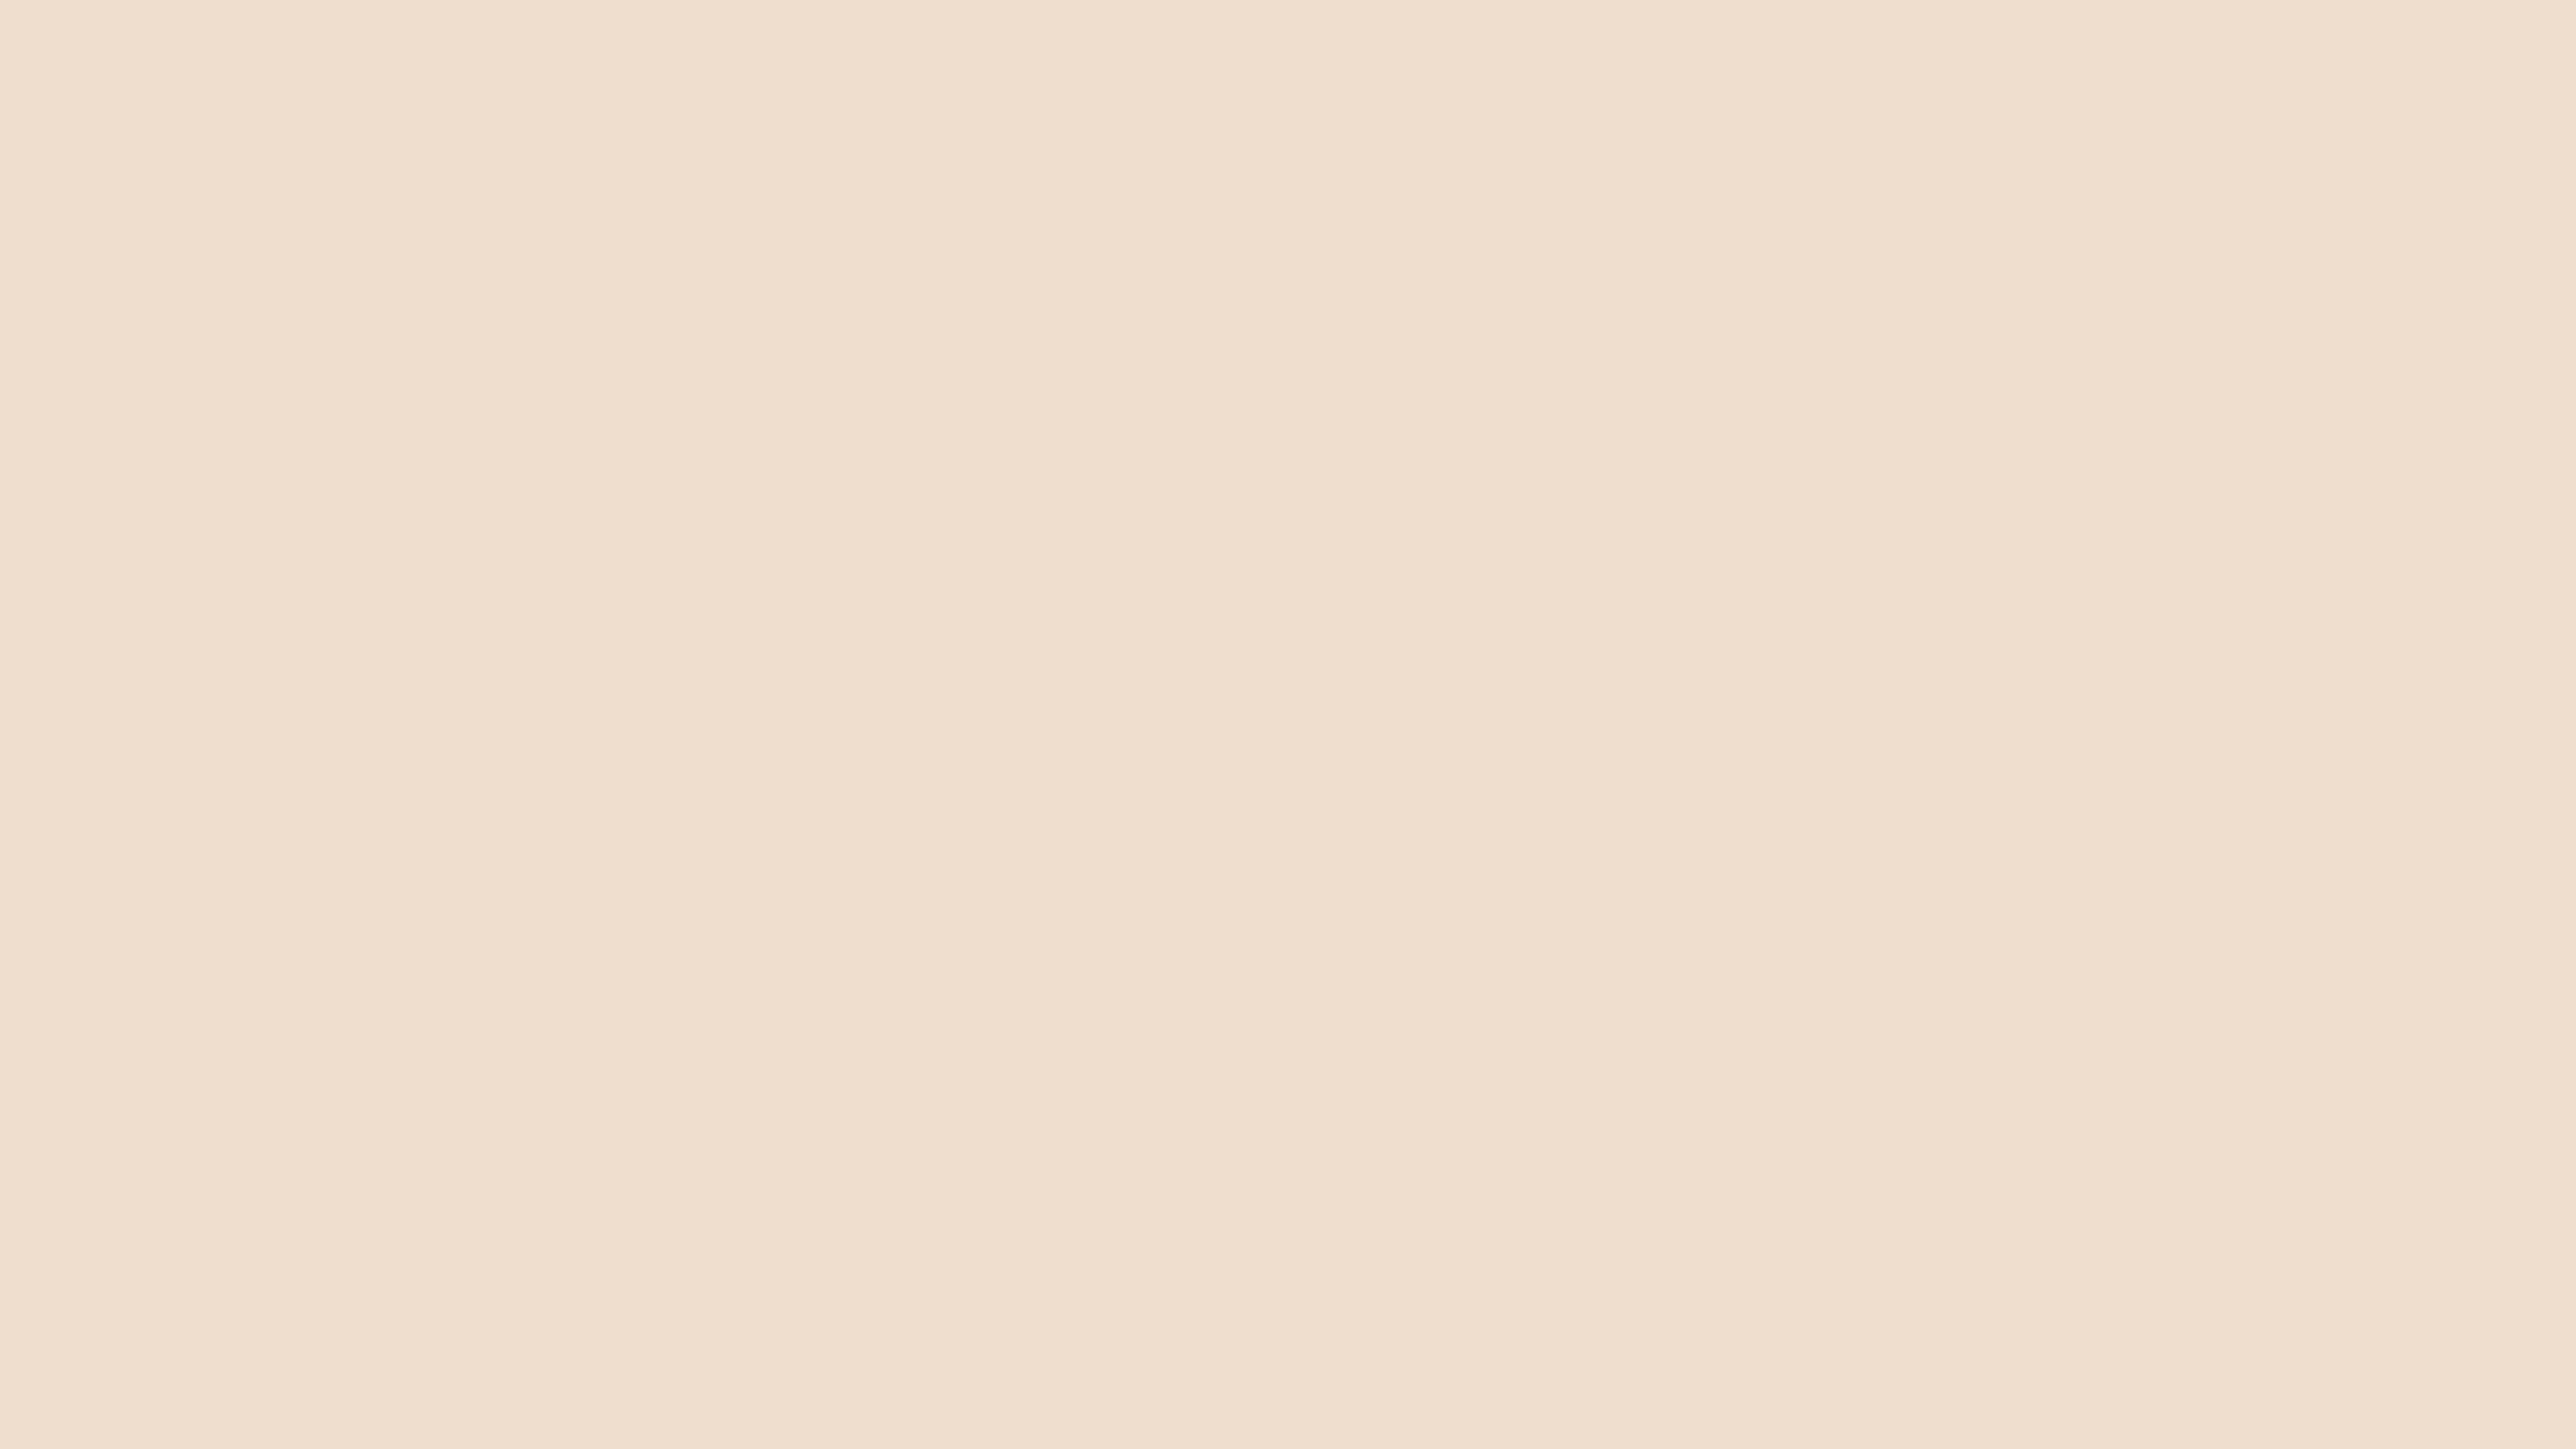 4096x2304 Almond Solid Color Background